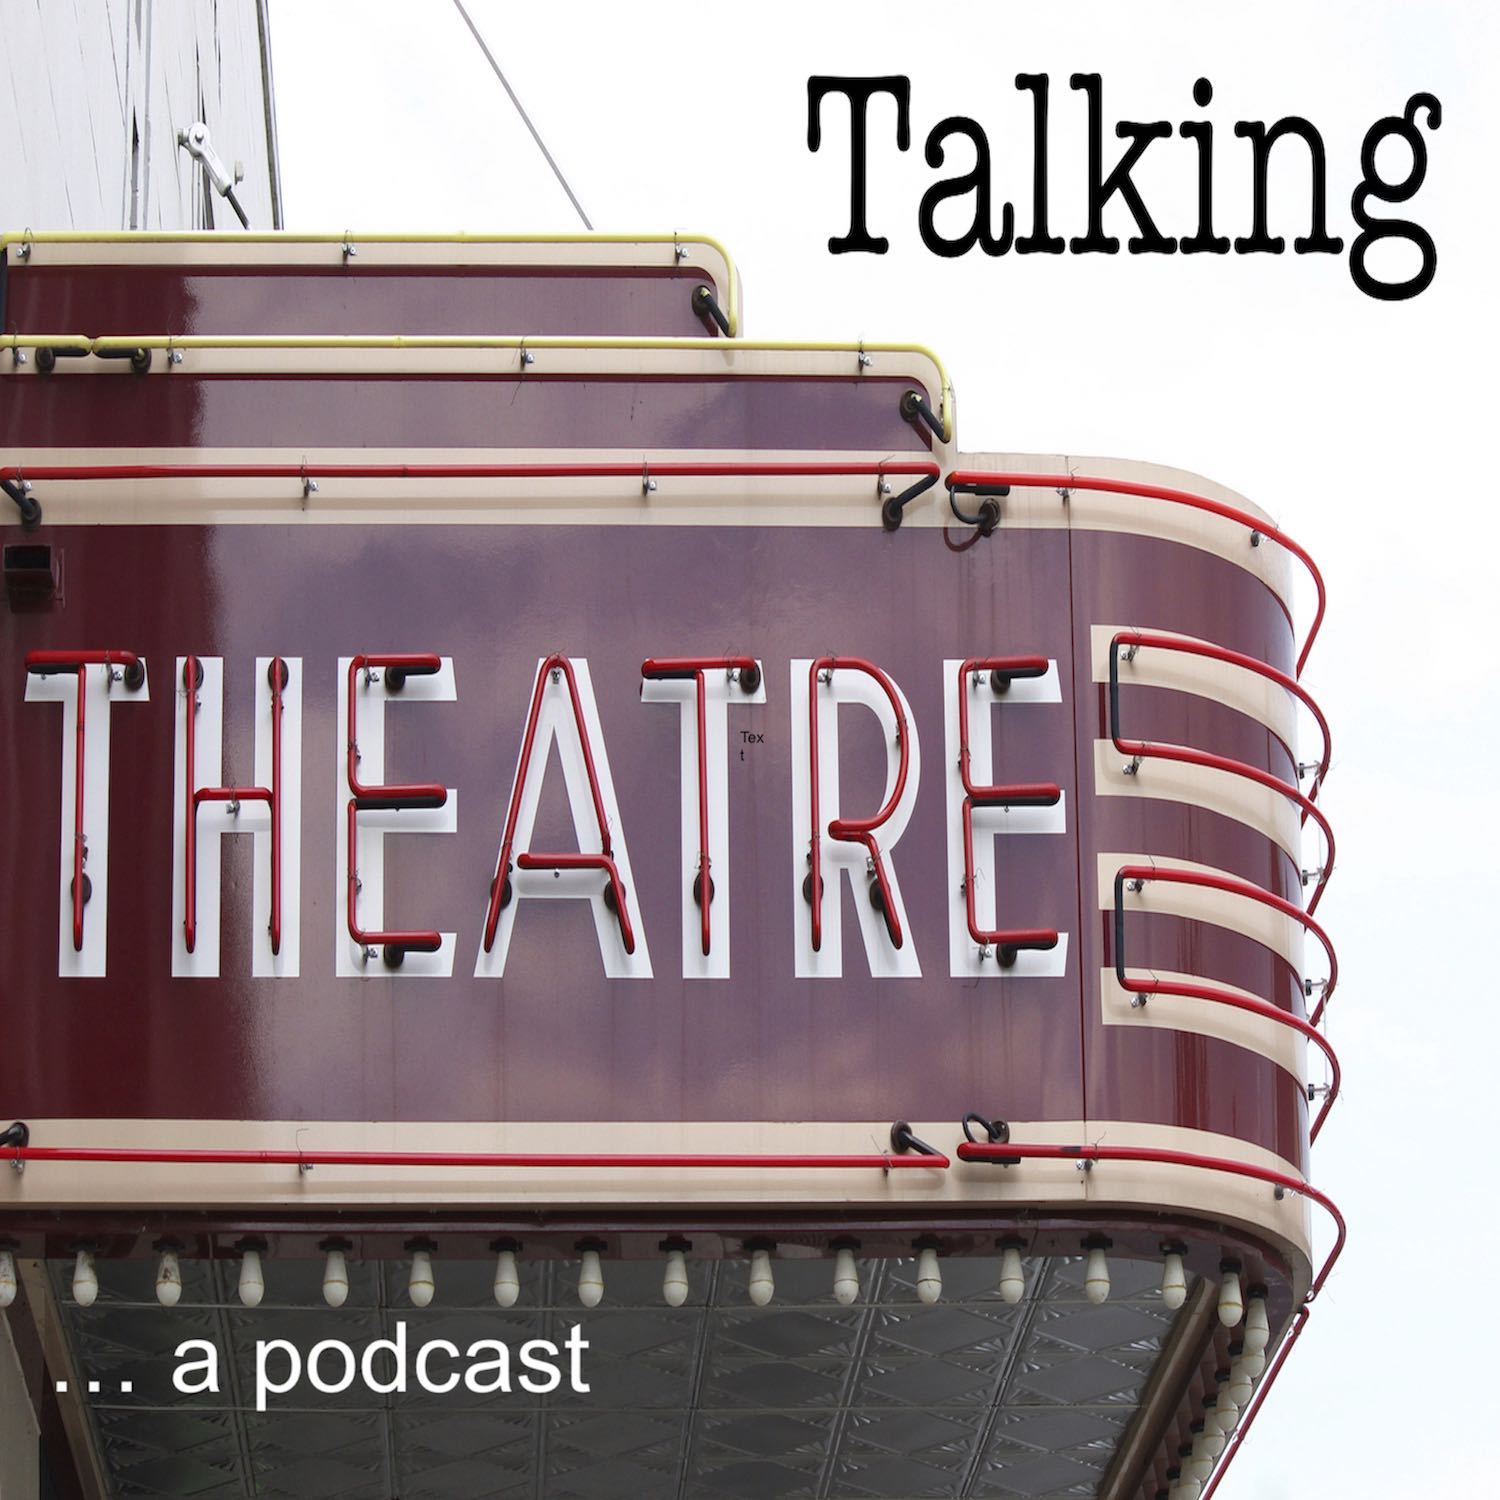 Talking Theatre: a podcast